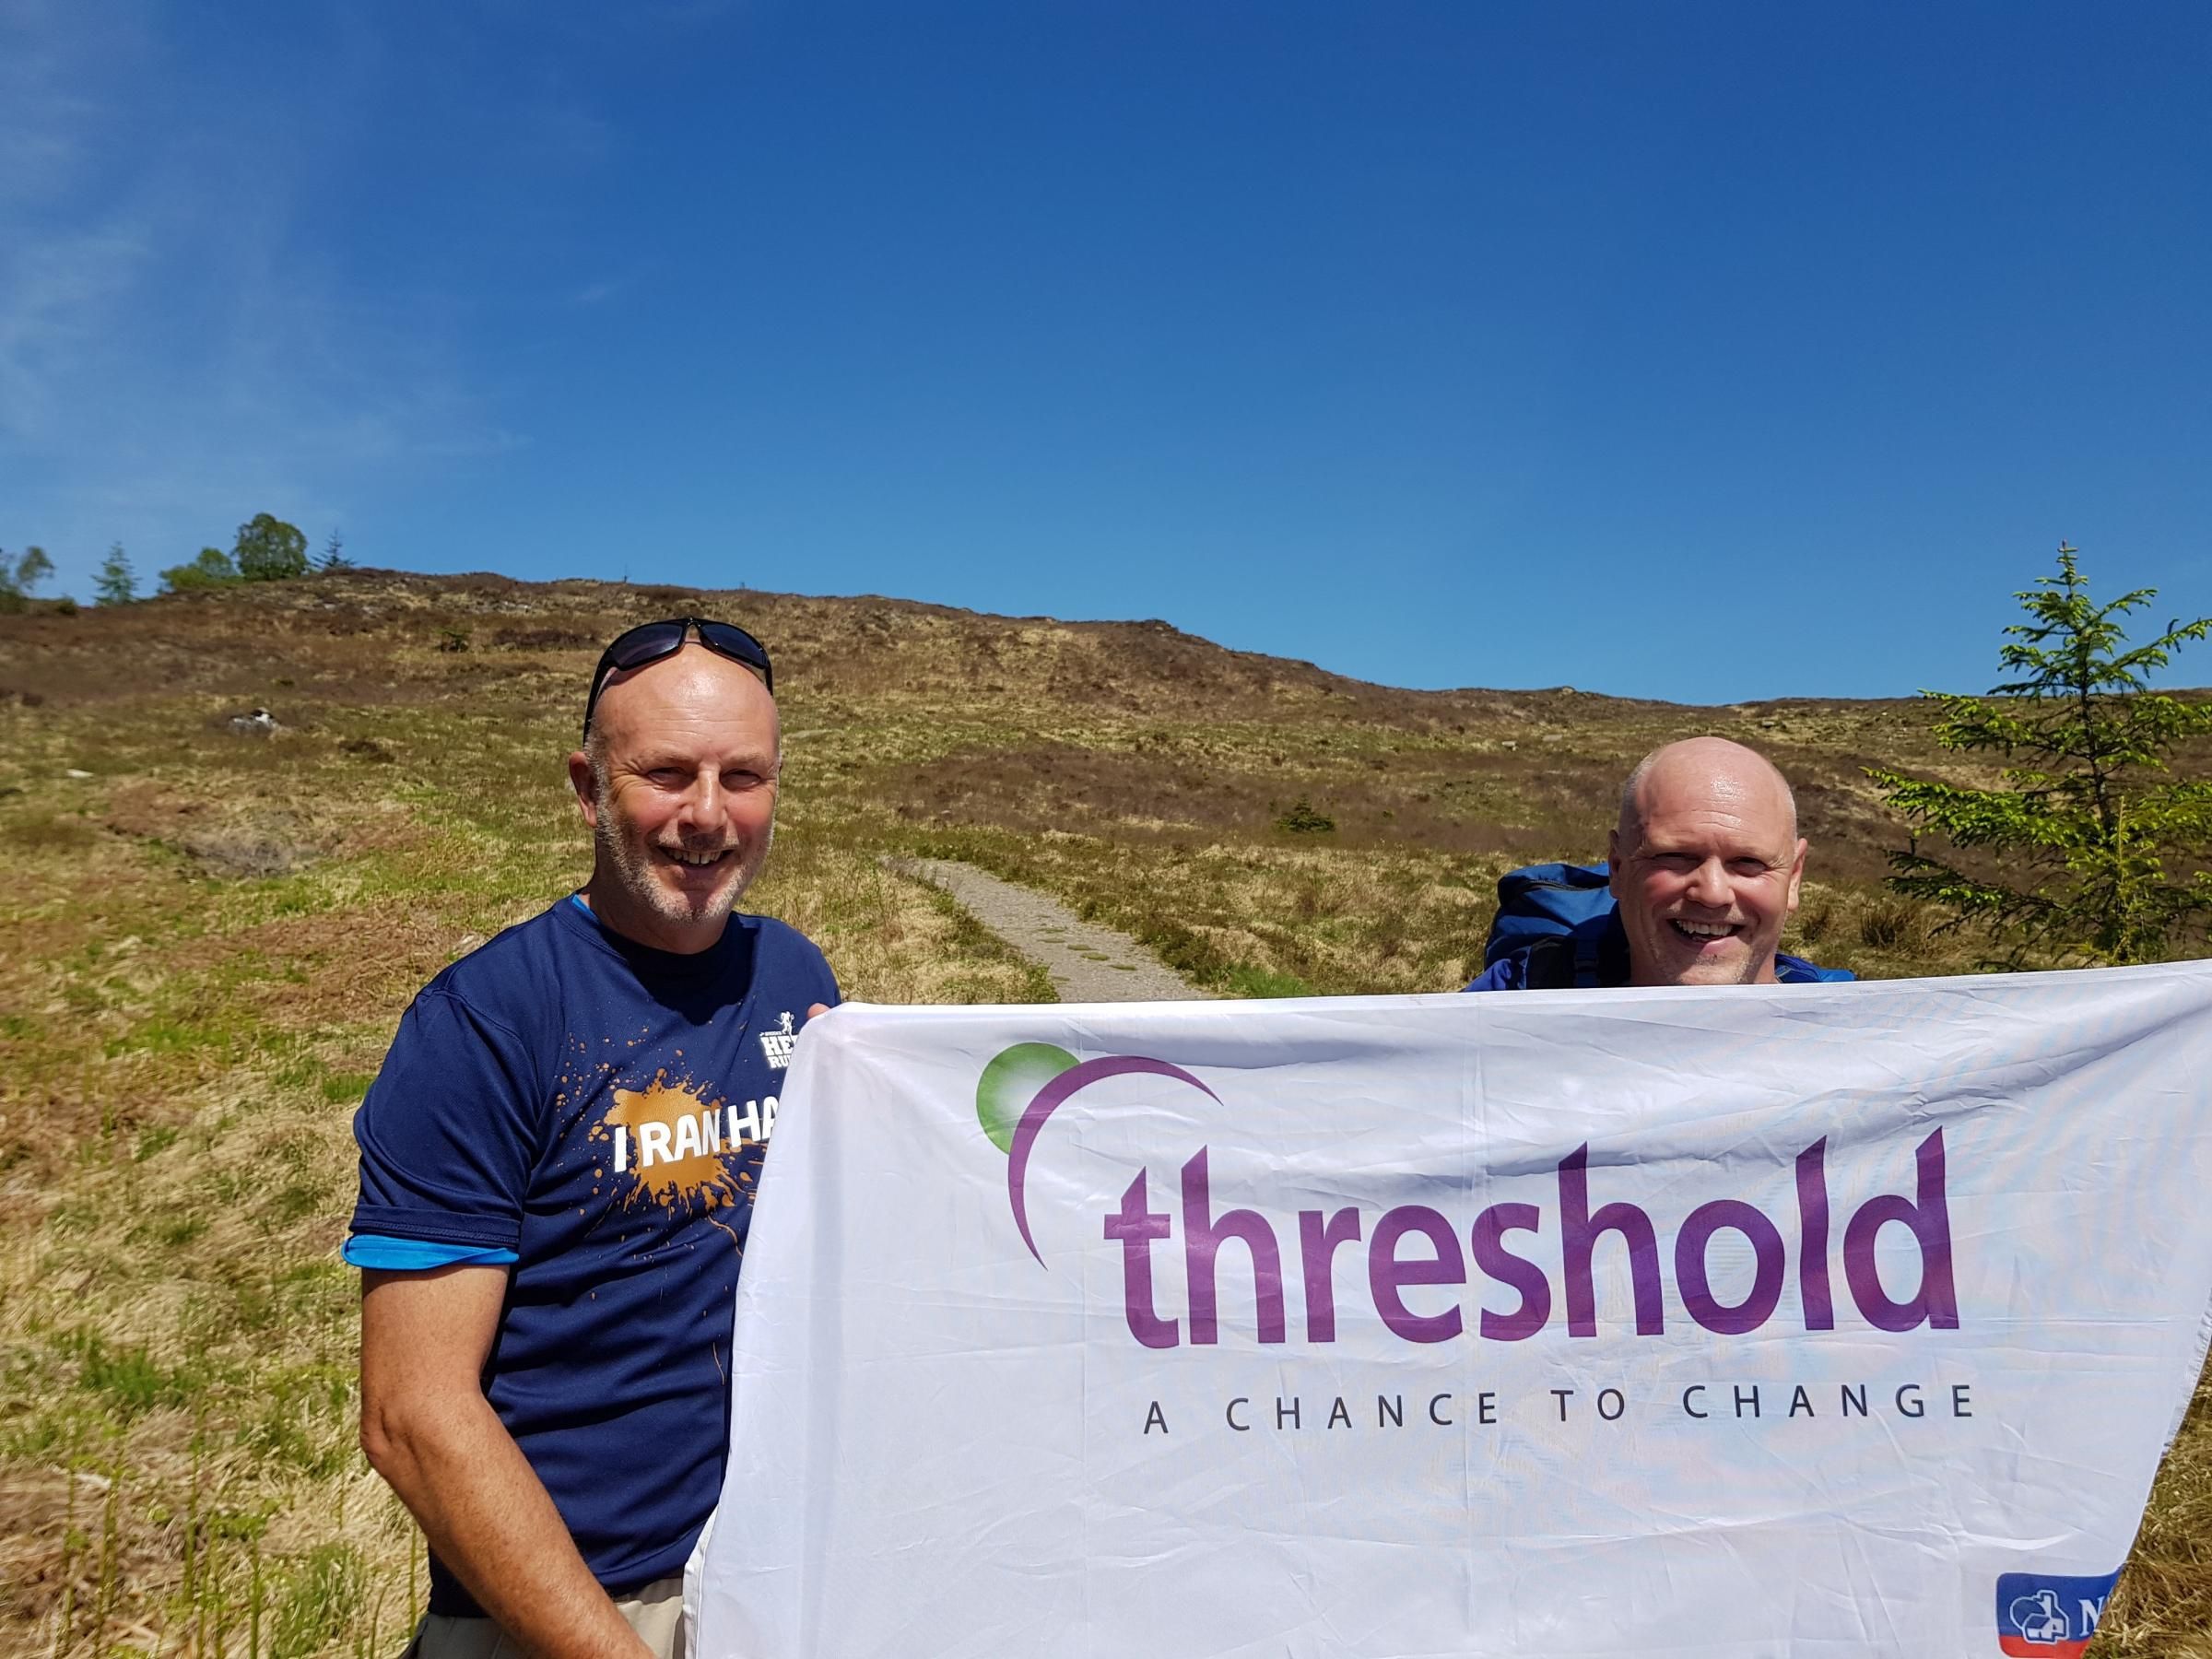 Cliff Boddy and Gary Hillerby hike through the Scottish Highlands for Threshold.